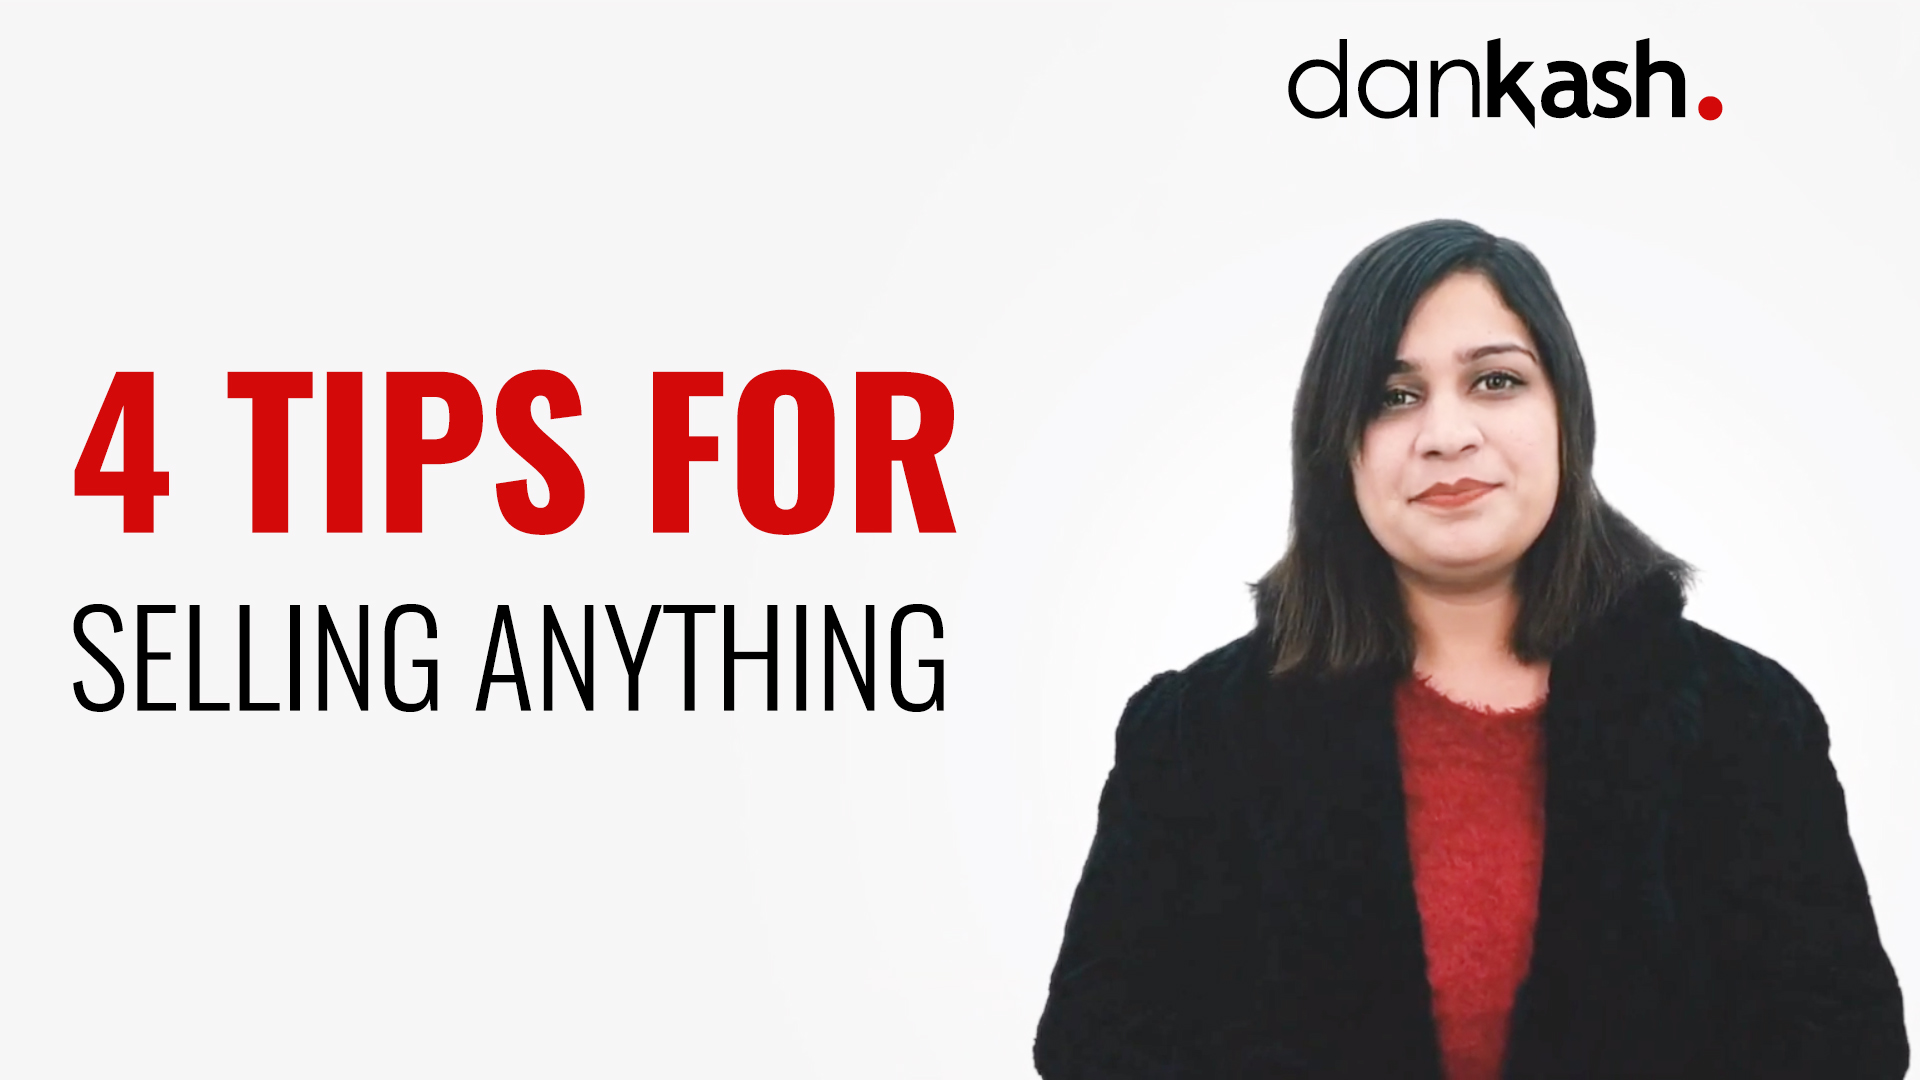 4 Tips for selling anything